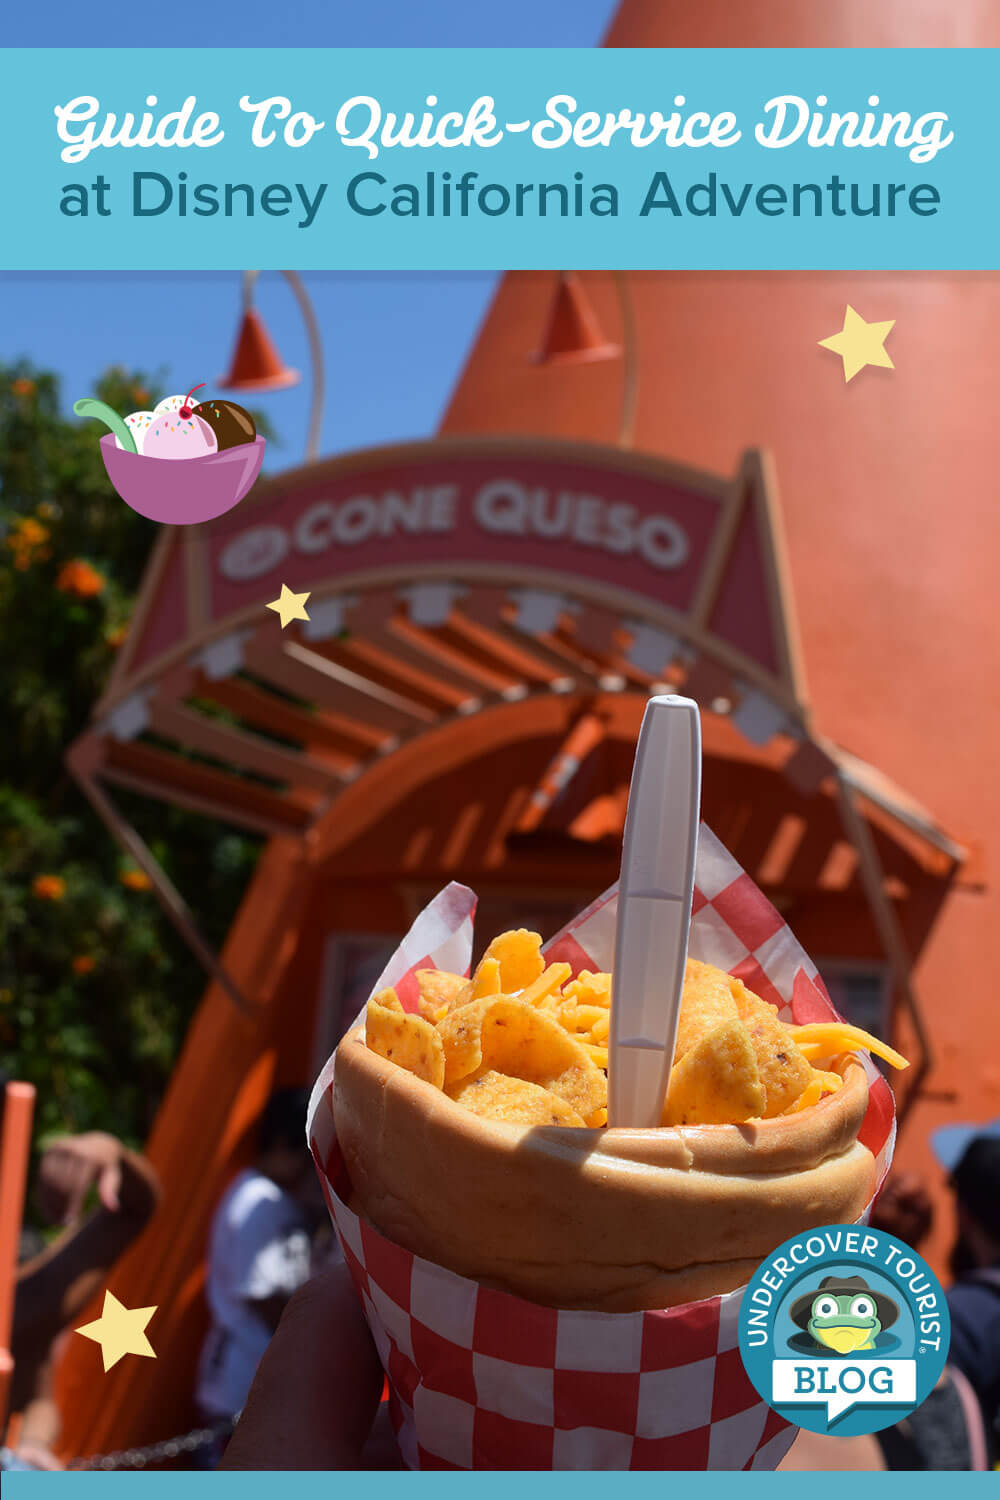 Best California Adventure Quick-Service Restaurants